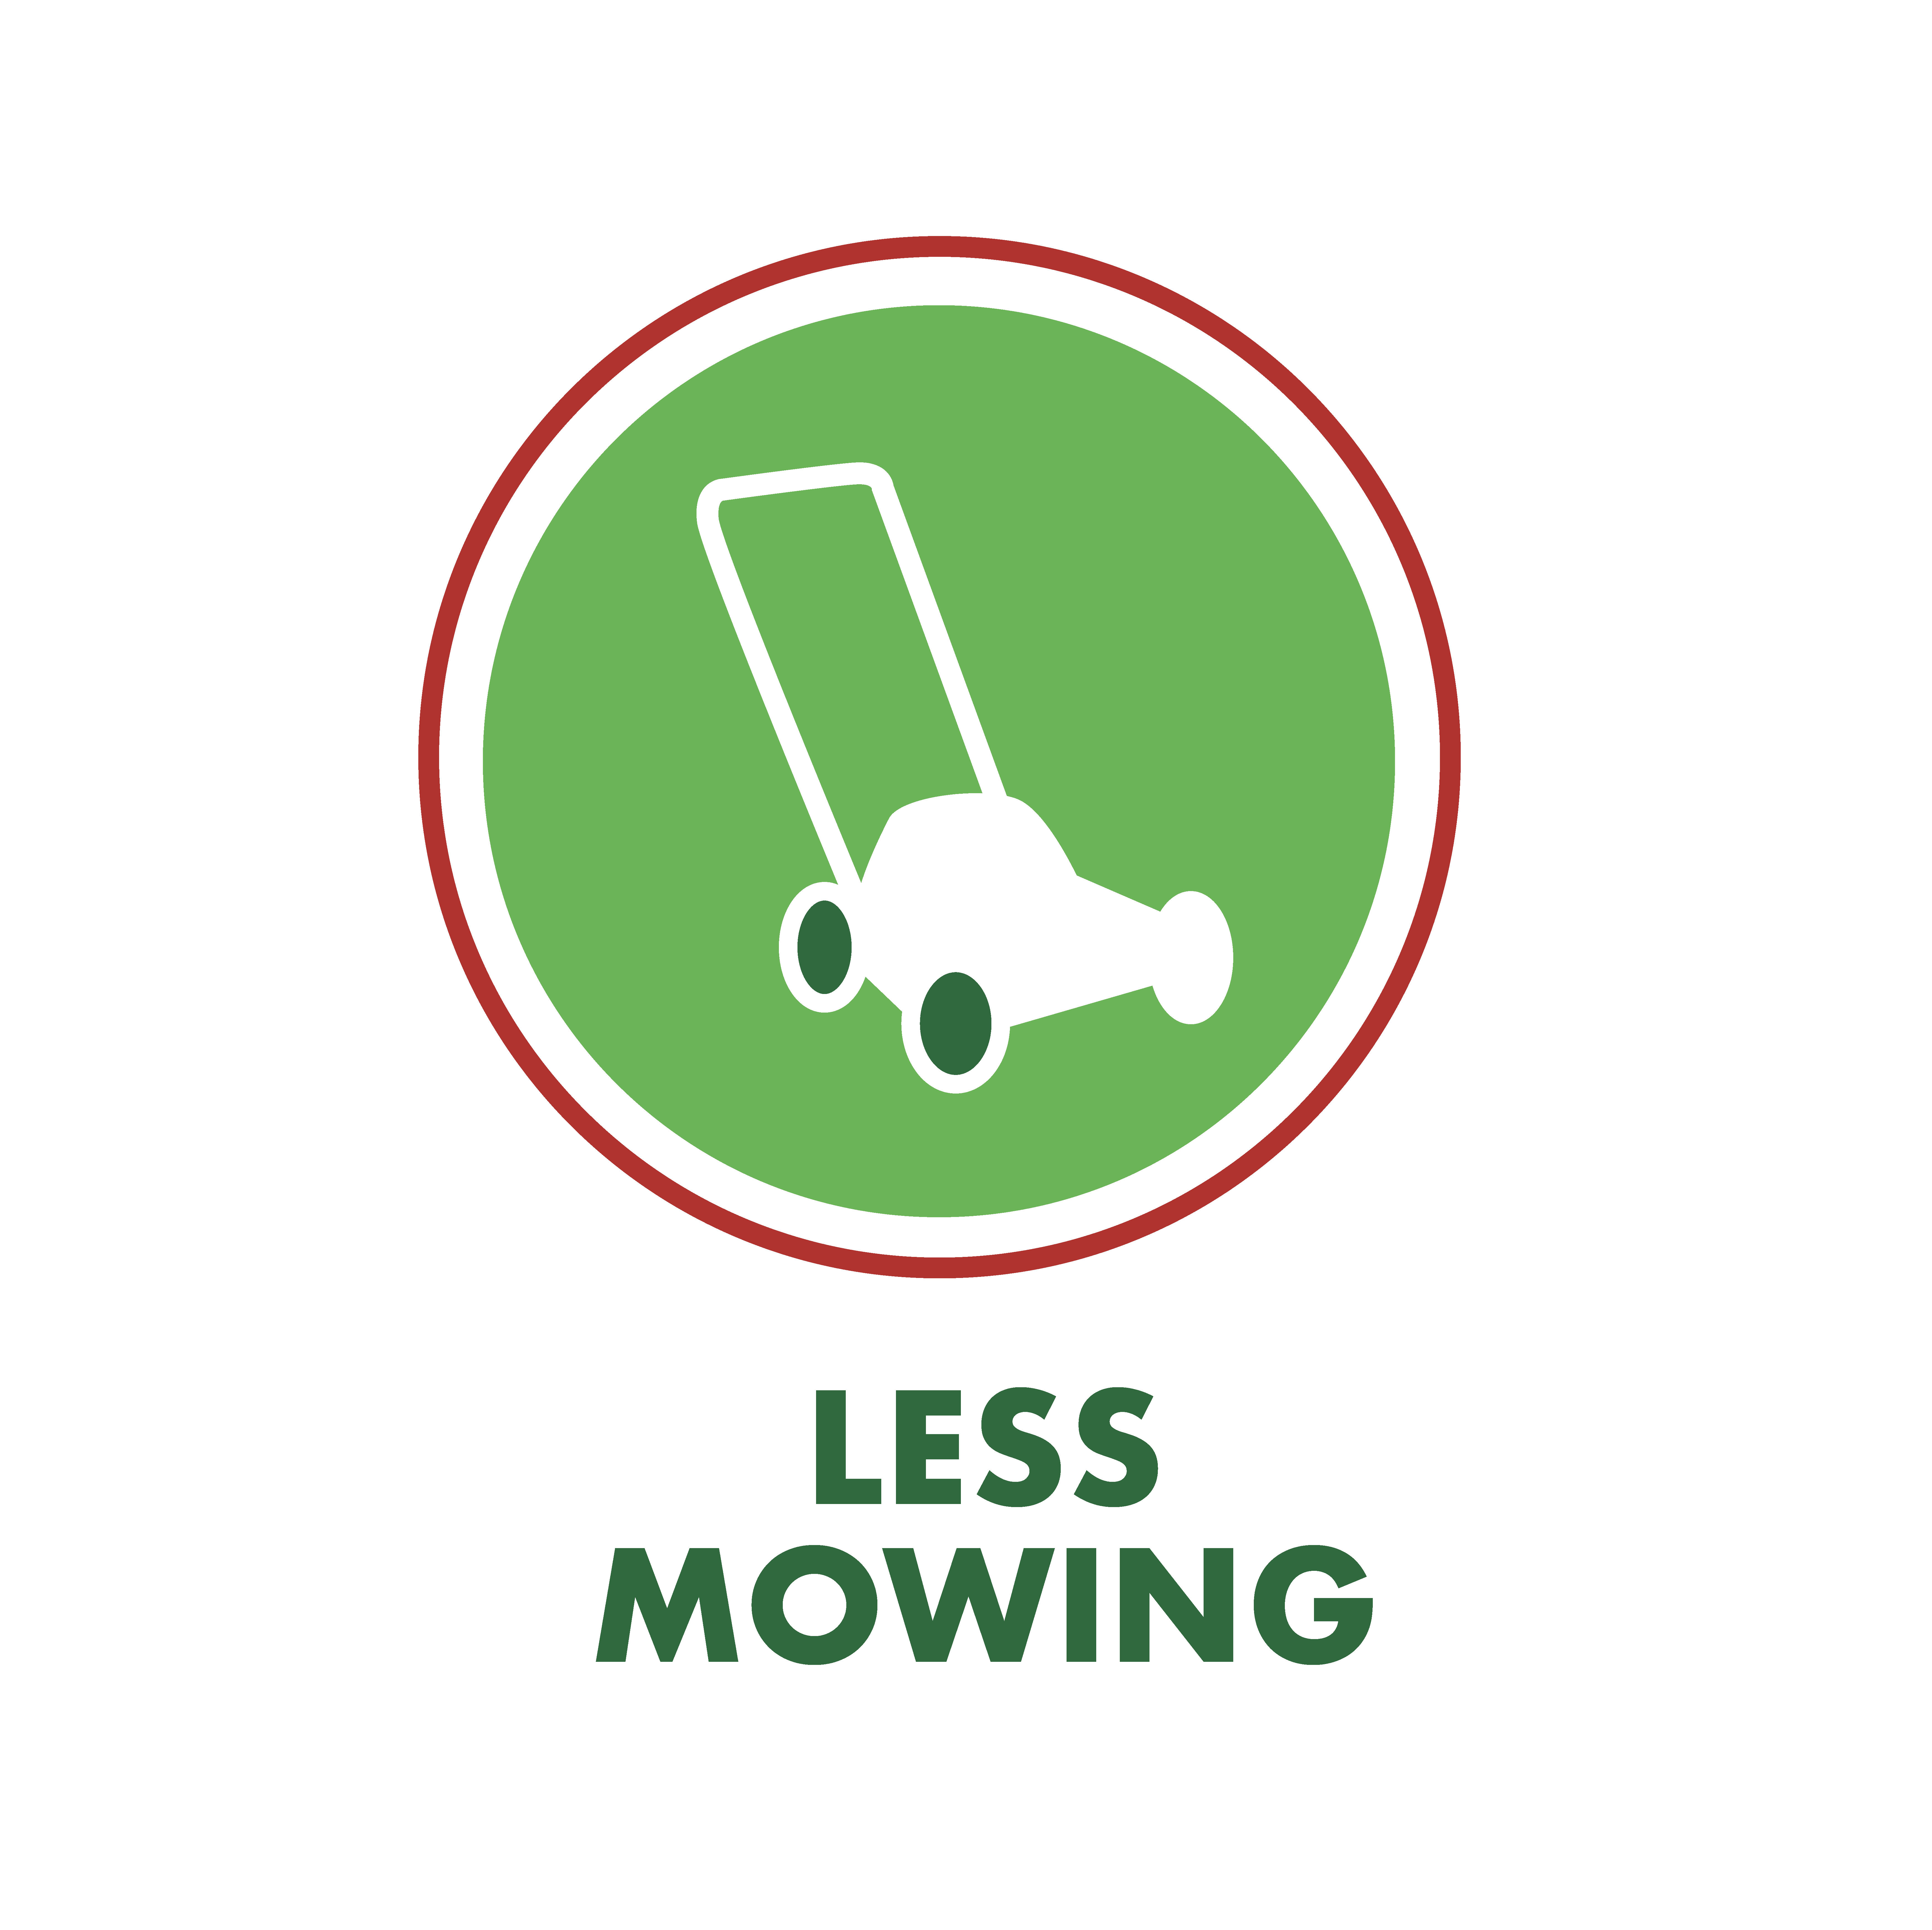 Less mowing